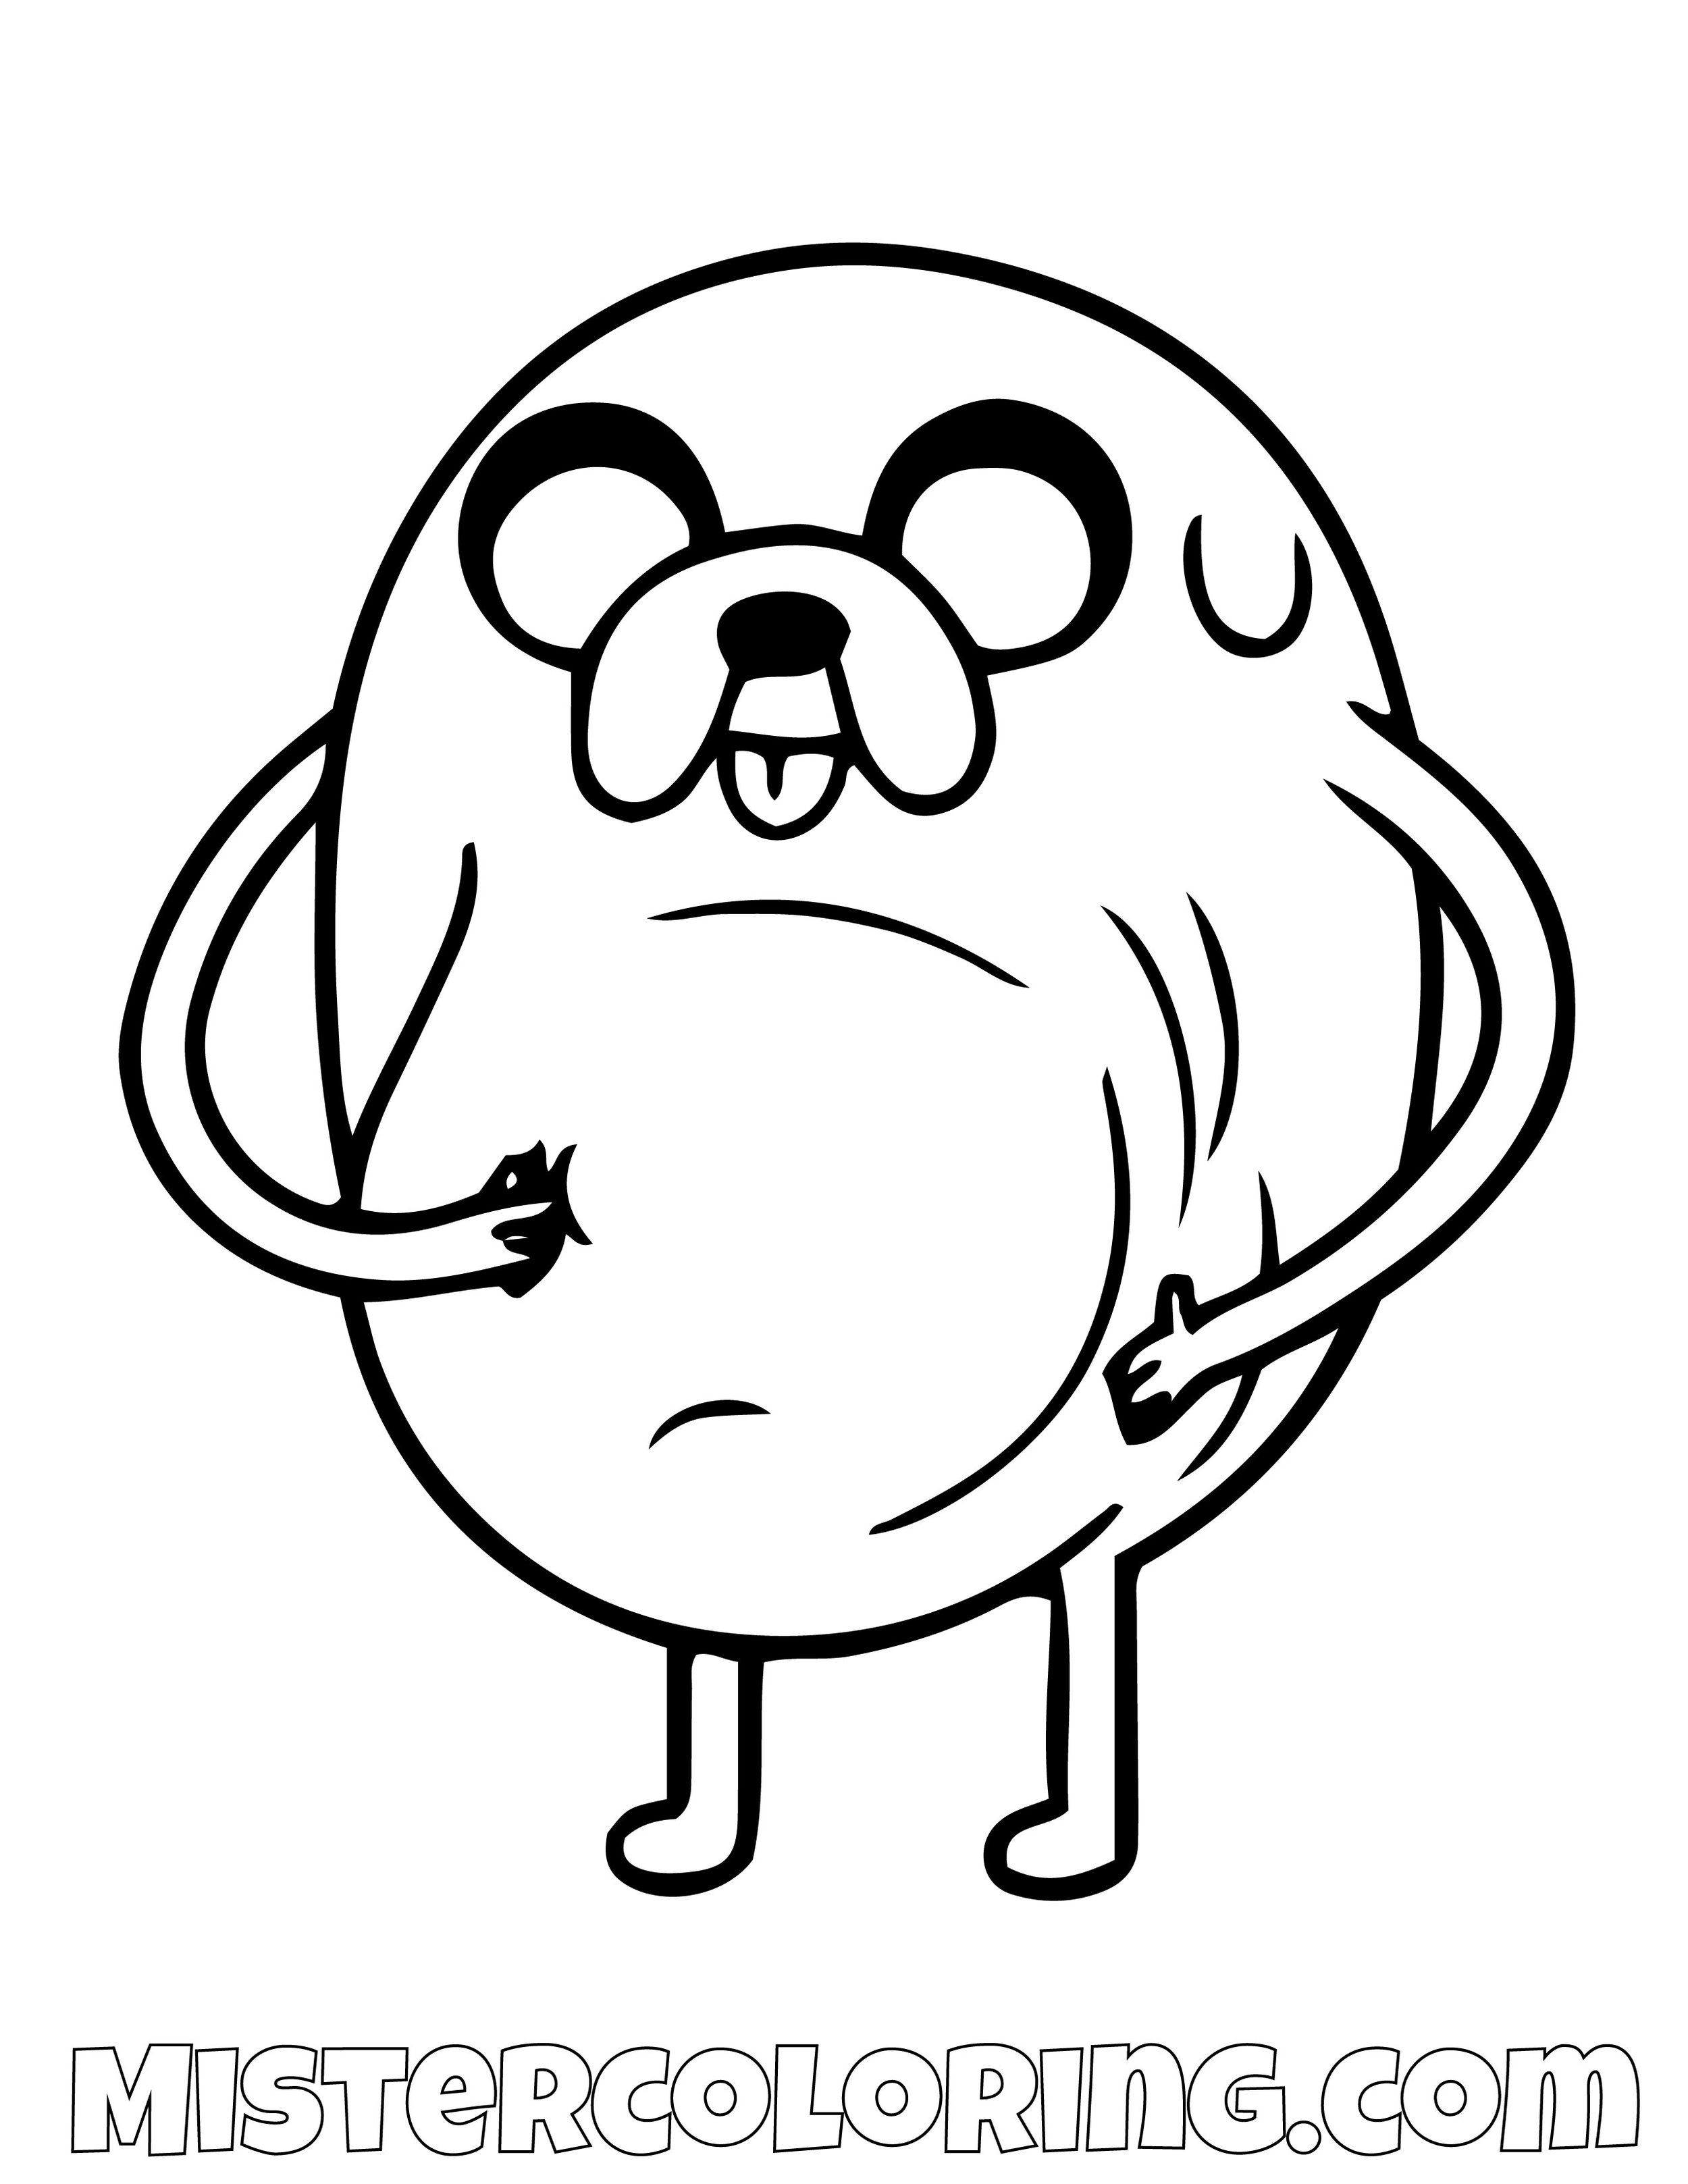 Adventure Time Coloring Pages - Best Coloring Pages For Kids | 1294x1000